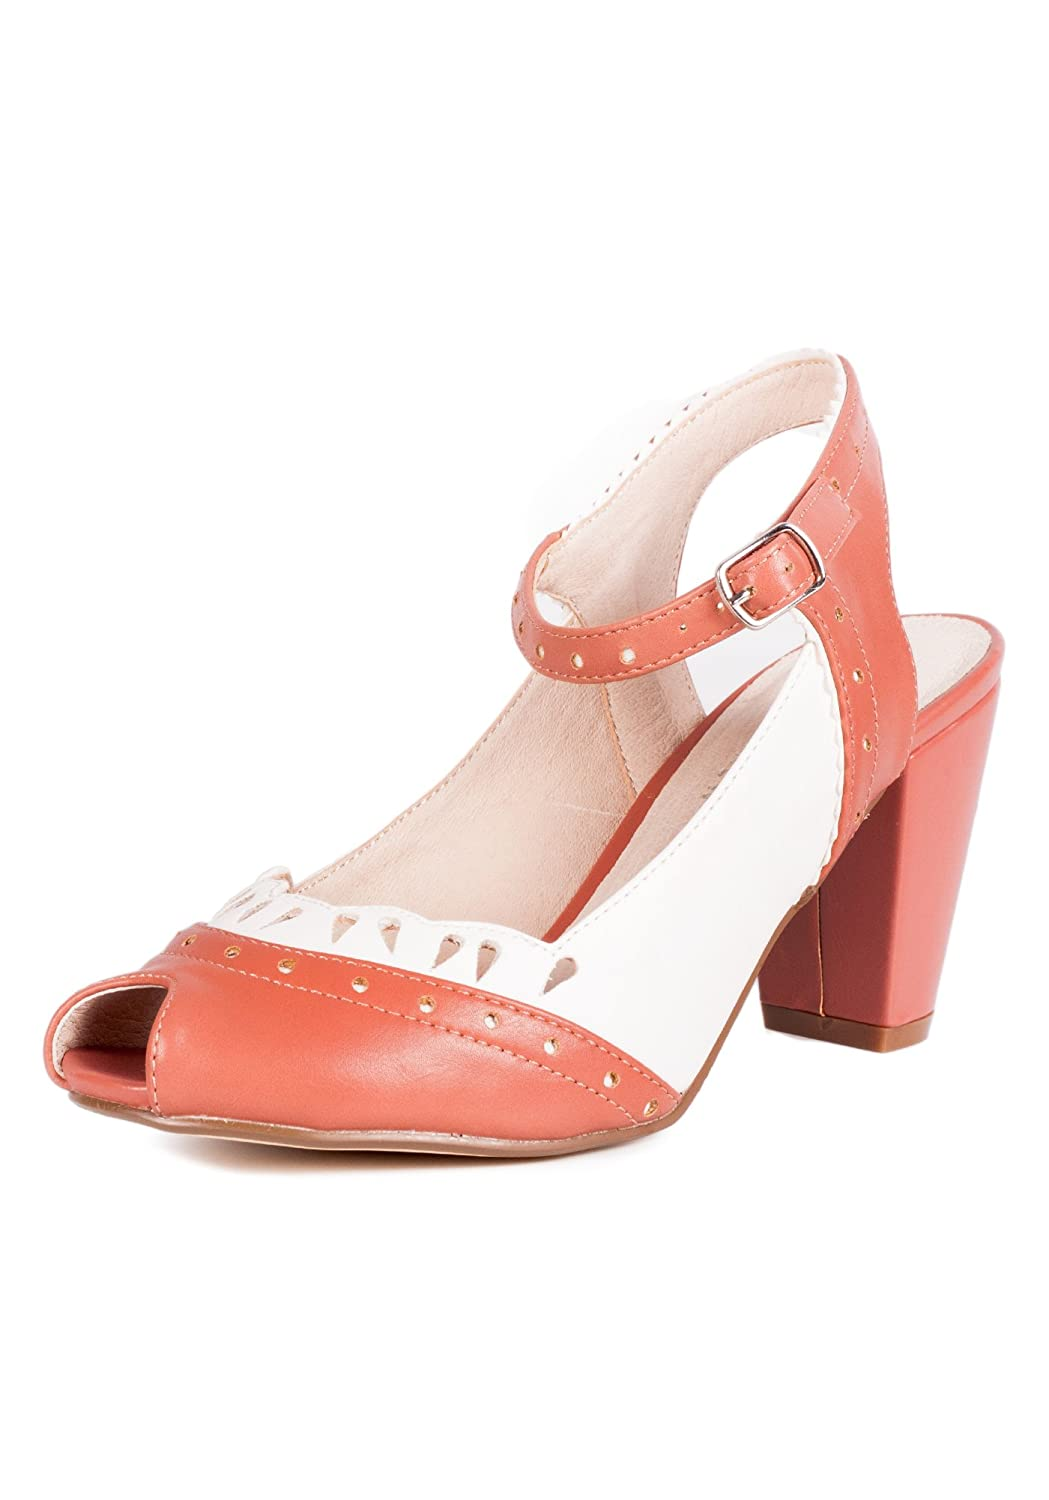 Chelsea Crew PASSION Vintage Inspired Scalloped Peep Toe Pump  AT vintagedancer.com